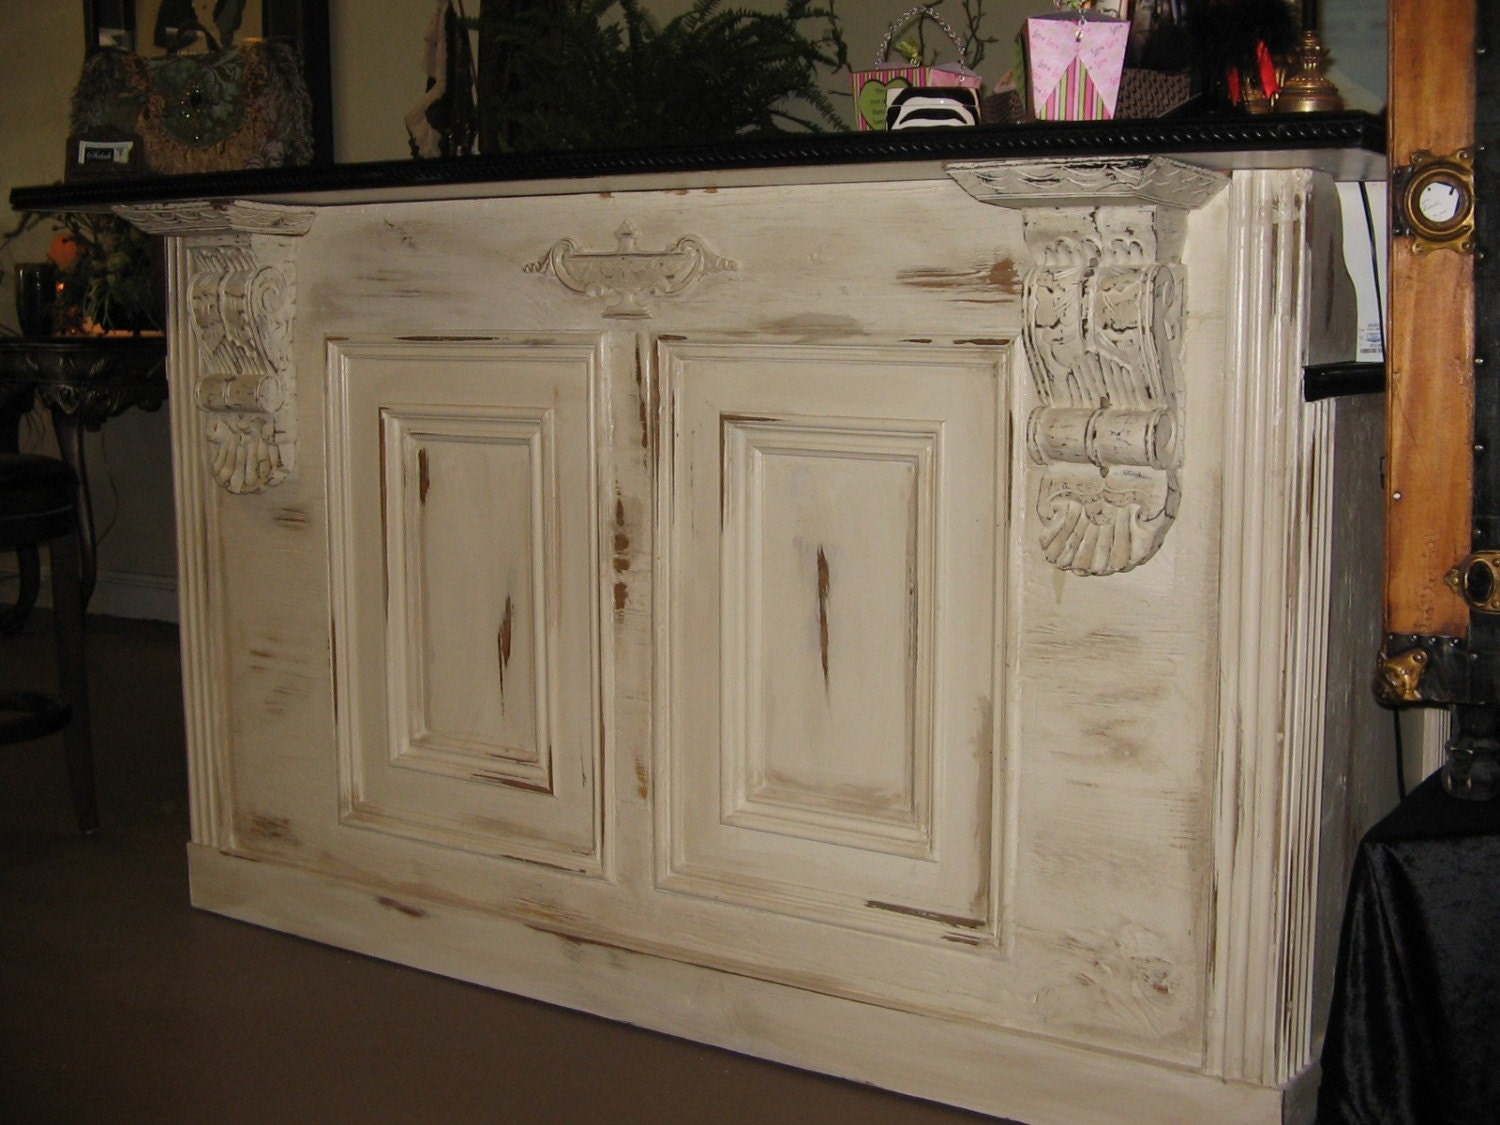 Kitchen Islands Add Beauty Function And Value To The: Bar Retail Counter / Reception Desk Kitchen By Jamesrobinson